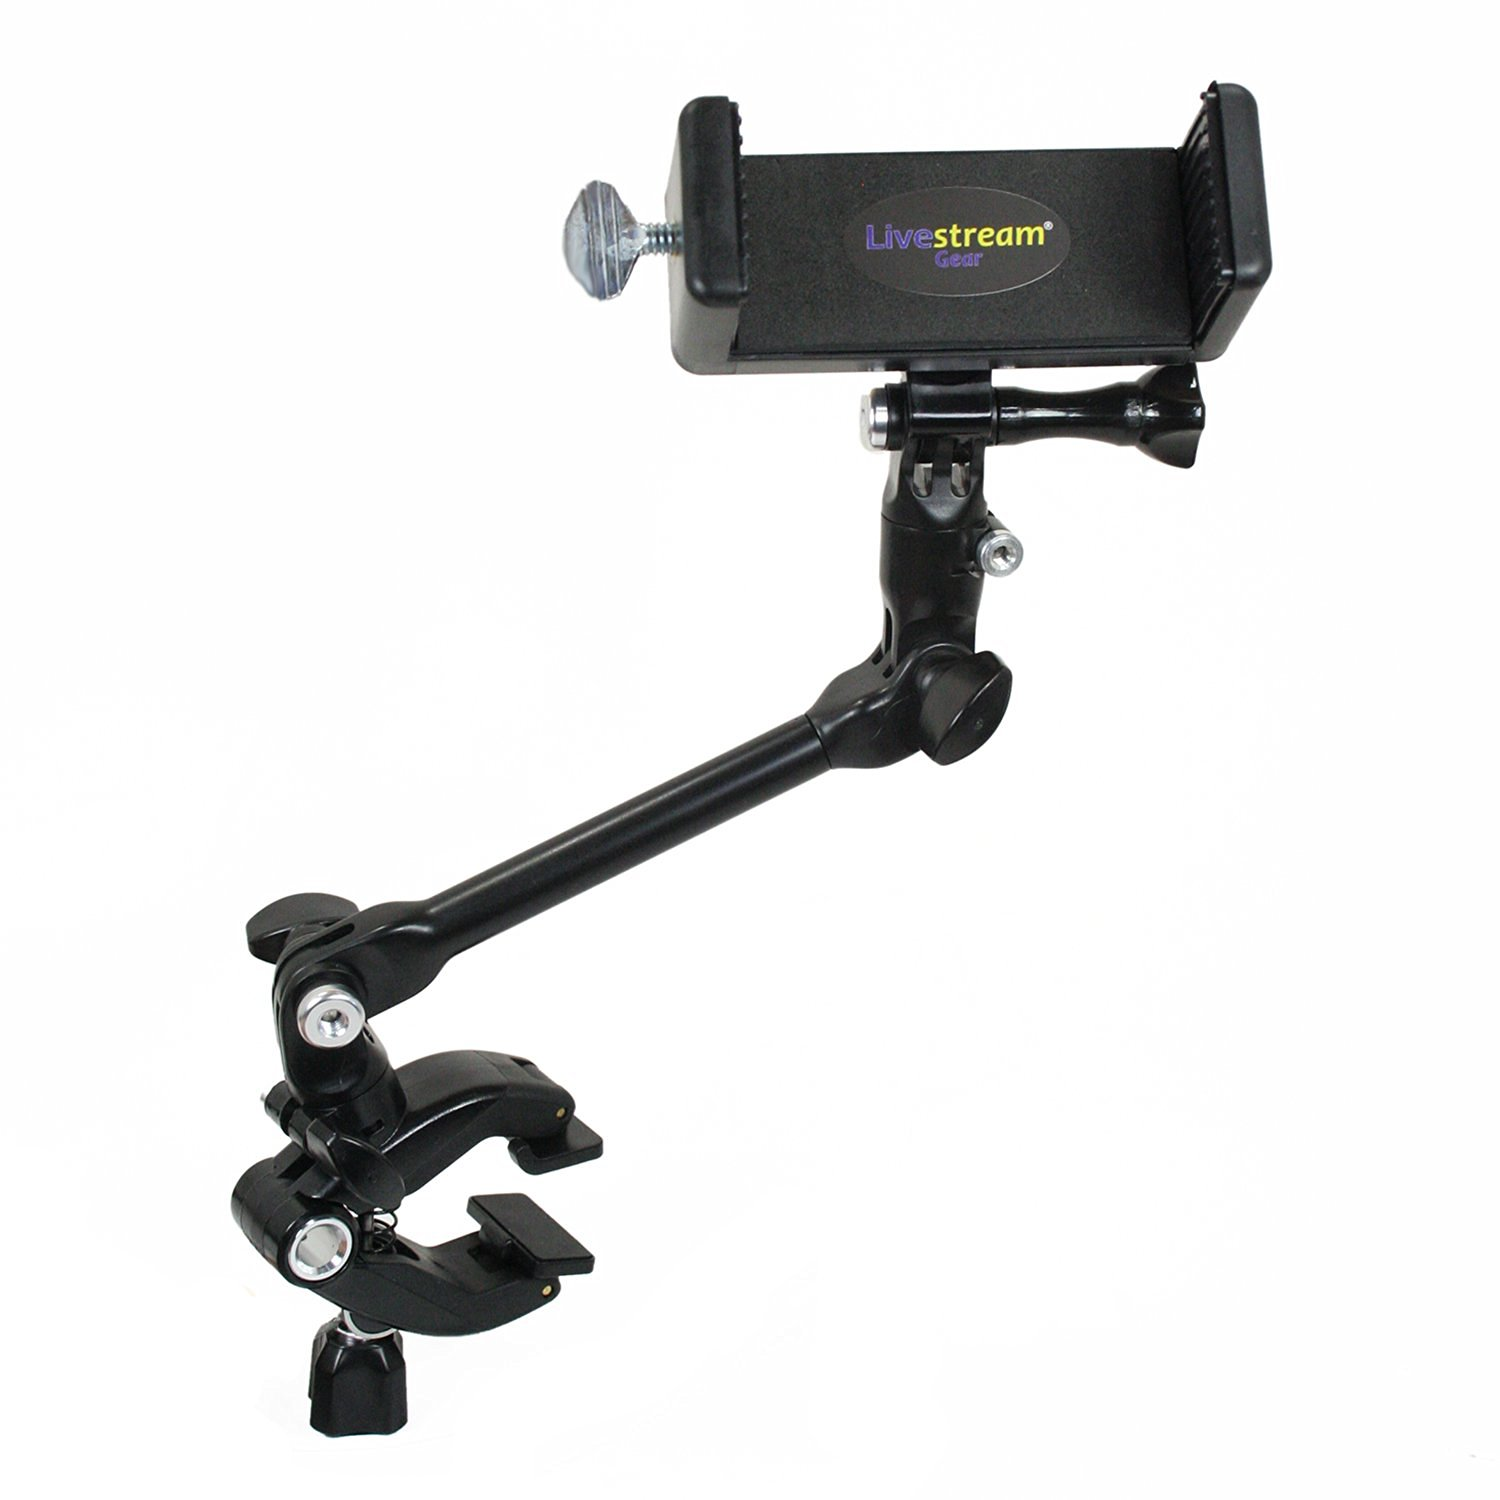 Livestream Gear® - PHABLET Jam Clamp Setup for Streaming or Video Recording, to Fit Large Sized Smartphone Devices like iPhone 6 Plus, Galaxy Note, etc. + Sport Cameras Like GoPro. (Phablet Jam Clamp)